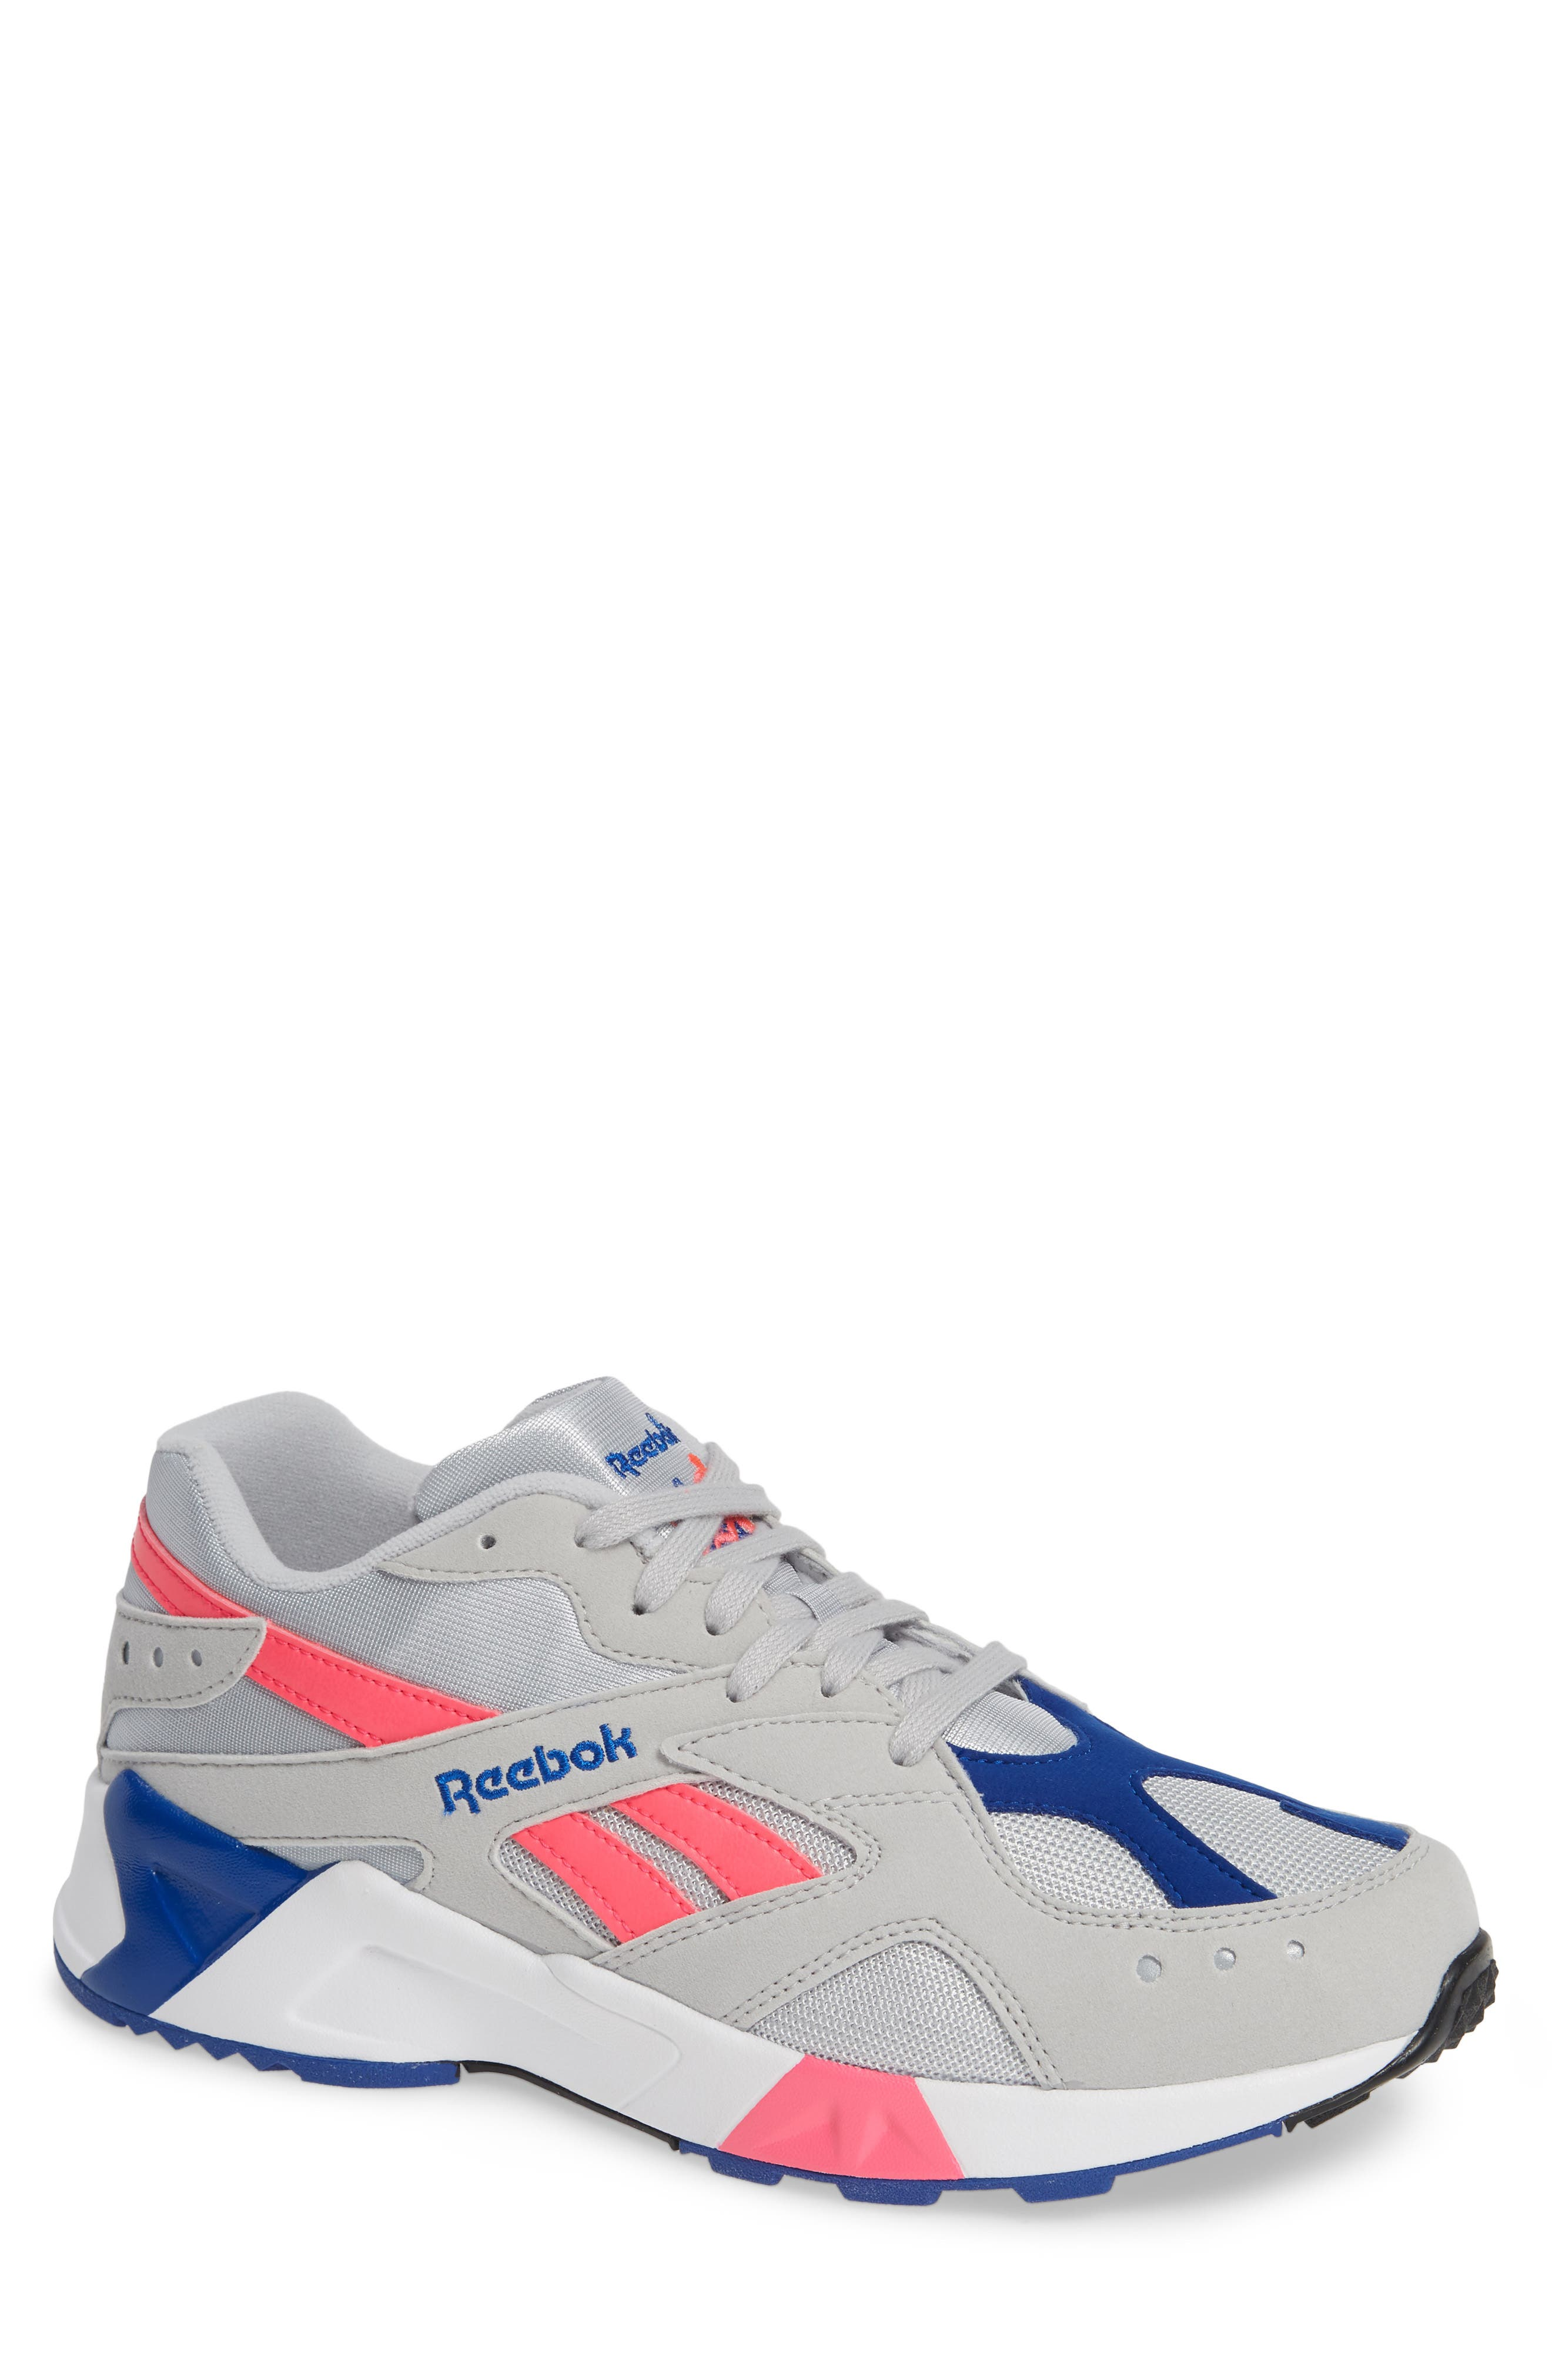 Aztrek Sneaker,                             Main thumbnail 1, color,                             GREY/ PINK/ COLLEGIATE ROYAL